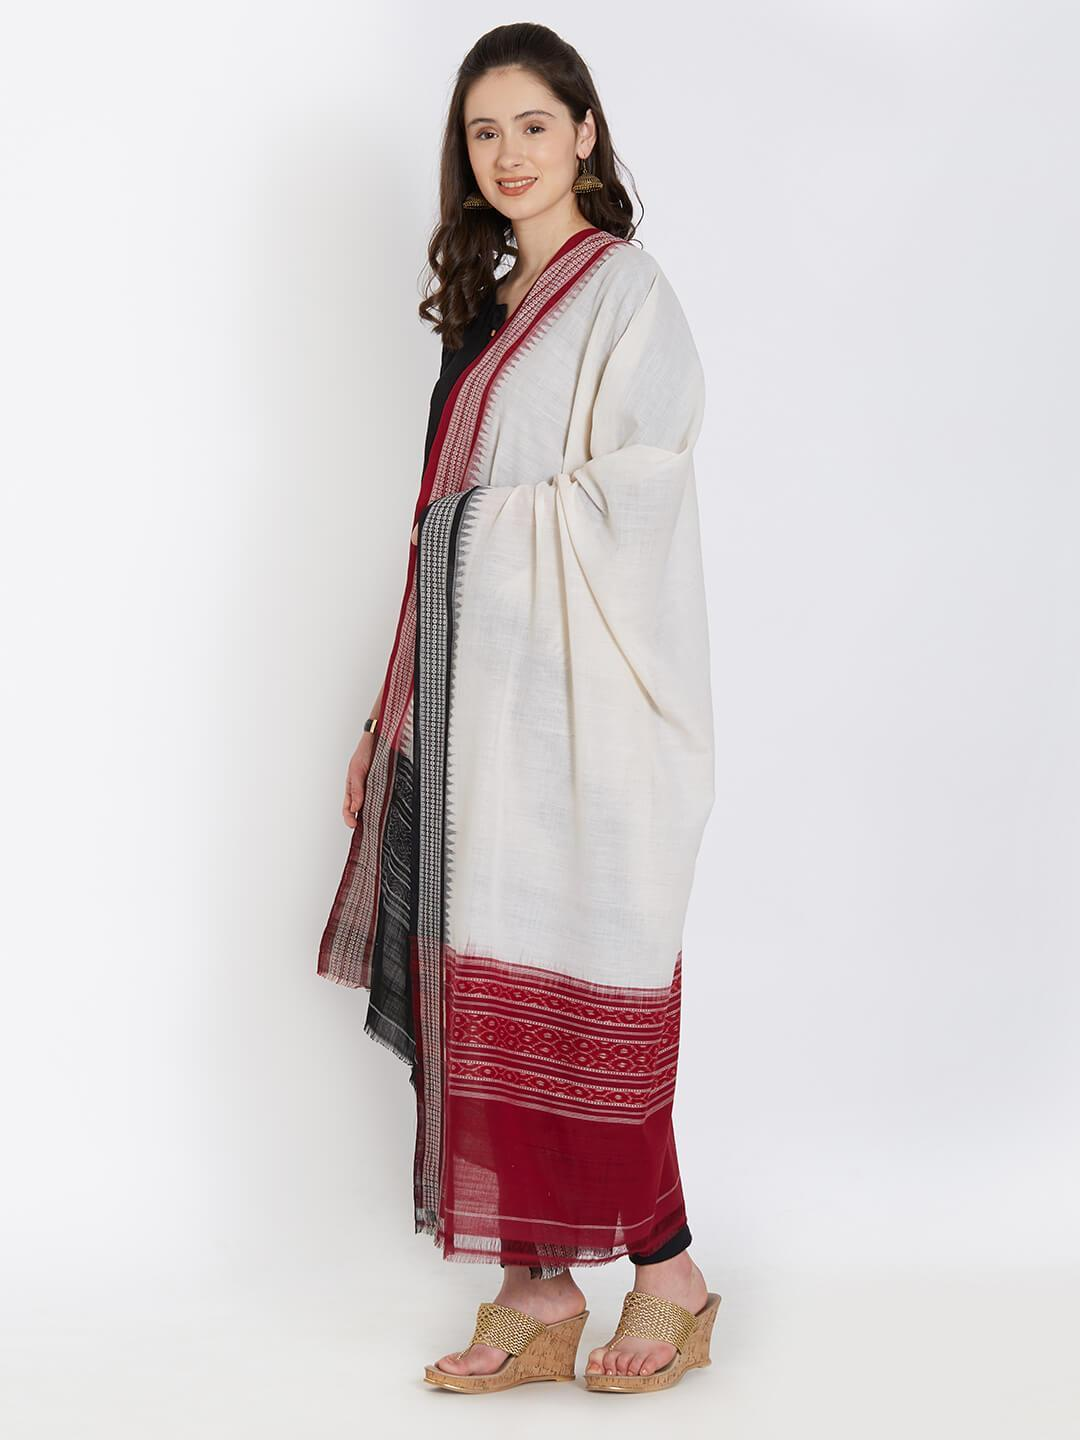 CraftsCollection.in - OffwhiteCotton Gangajamuna Sambalpuri Dupatta